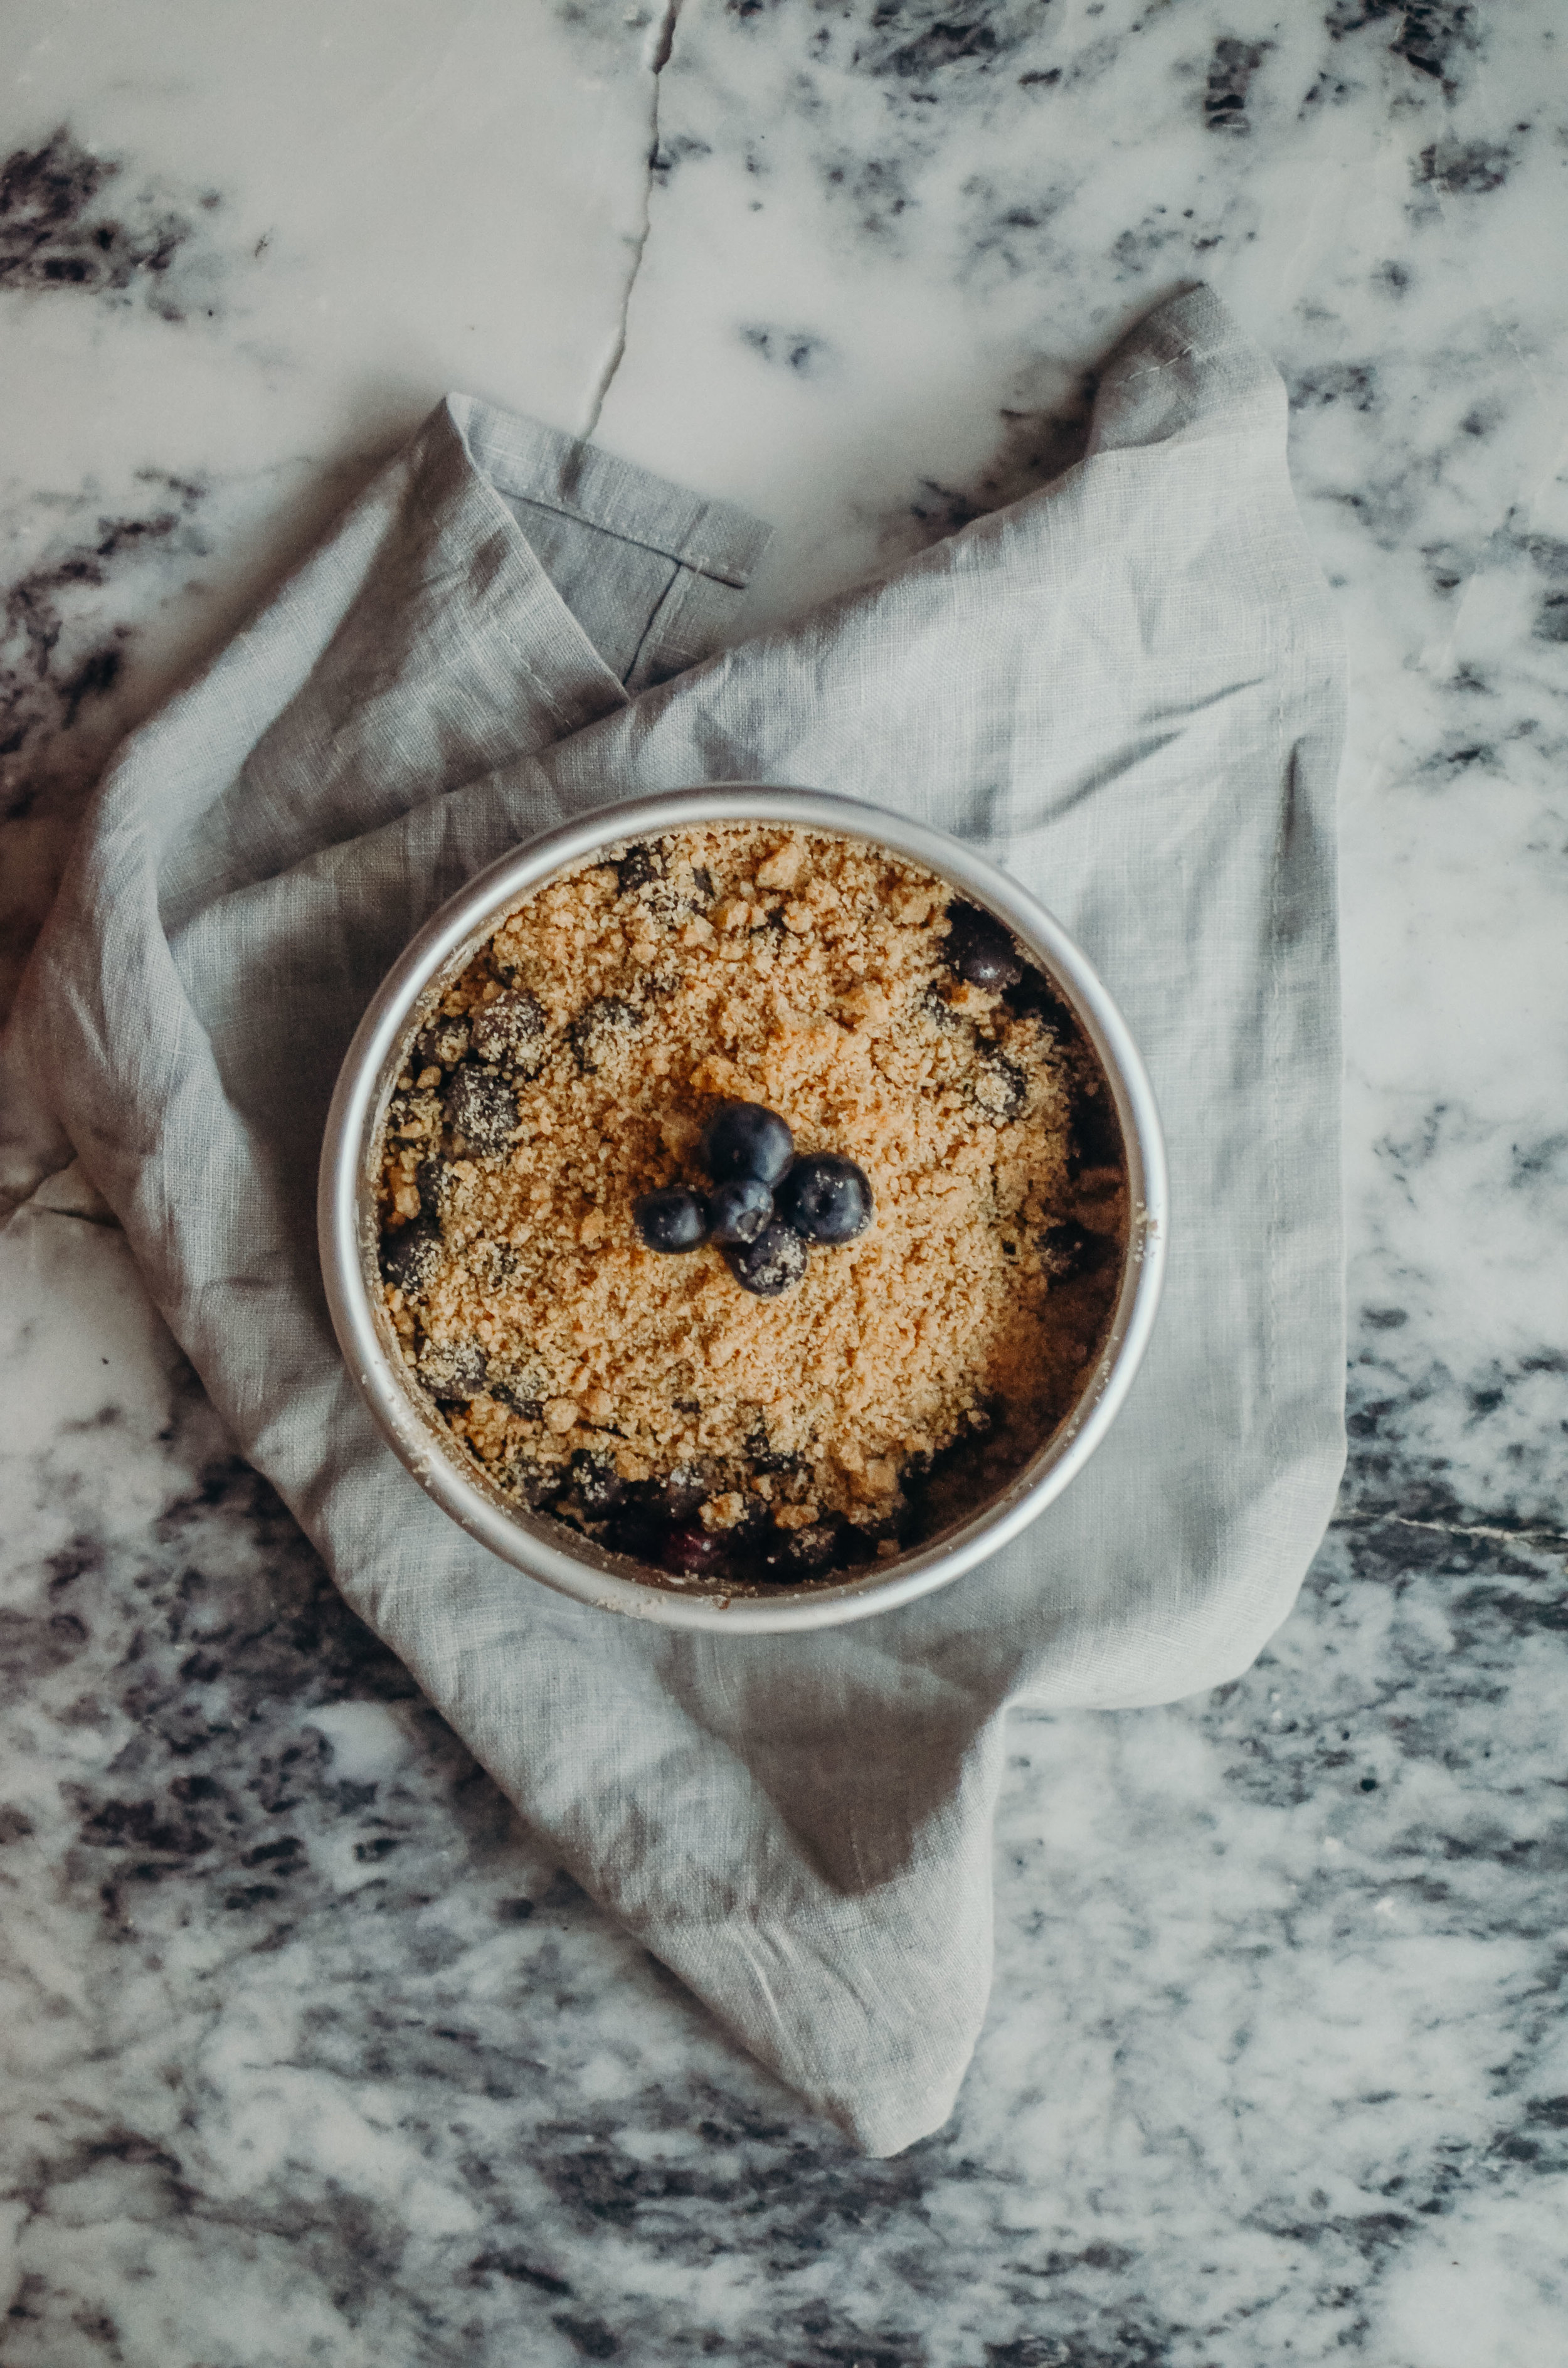 Wendling_Boyd_Terra_Square_Farmers_Market_bblueberry_Crumble-5.jpg